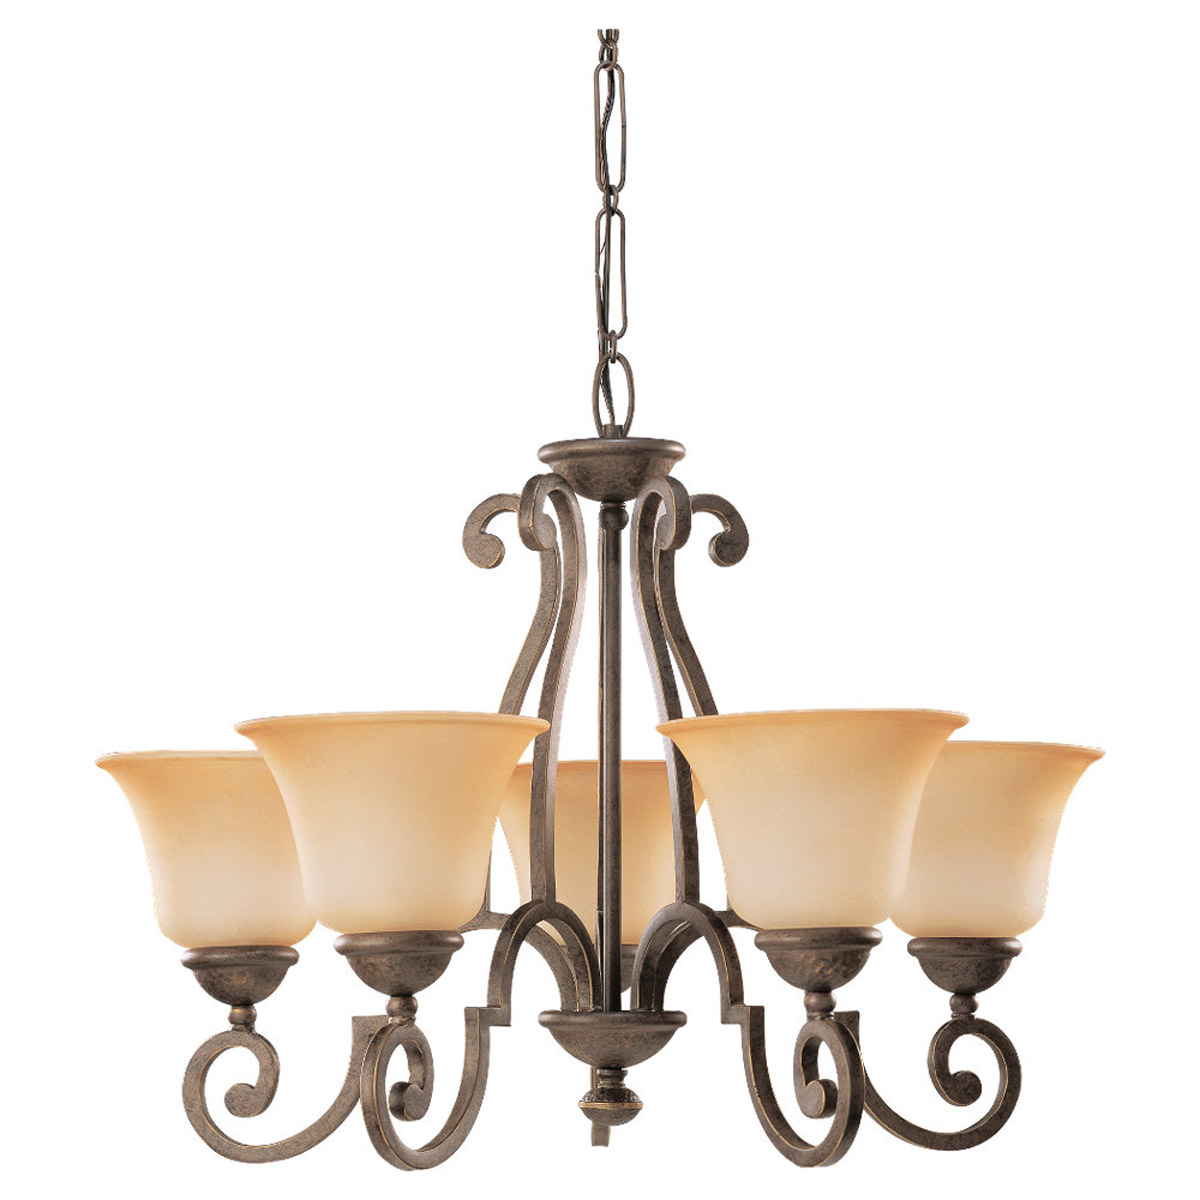 Sea Gull Lighting Brandywine 5 Light Chandelier in Antique Bronze 39032BLE-71